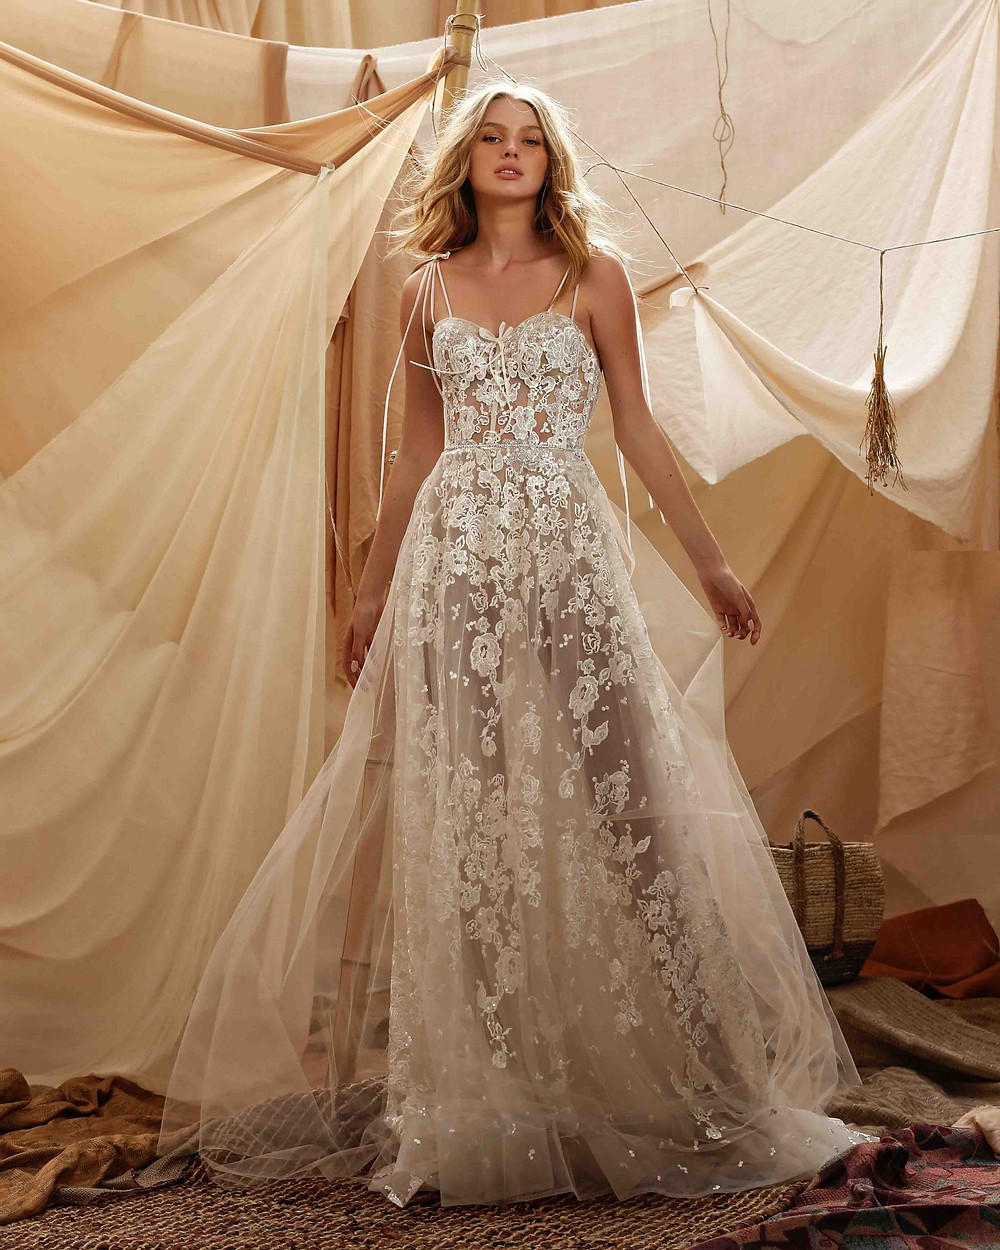 A Berta 2021 A-line, soft flowy tulle wedding dress with embroidery and straps